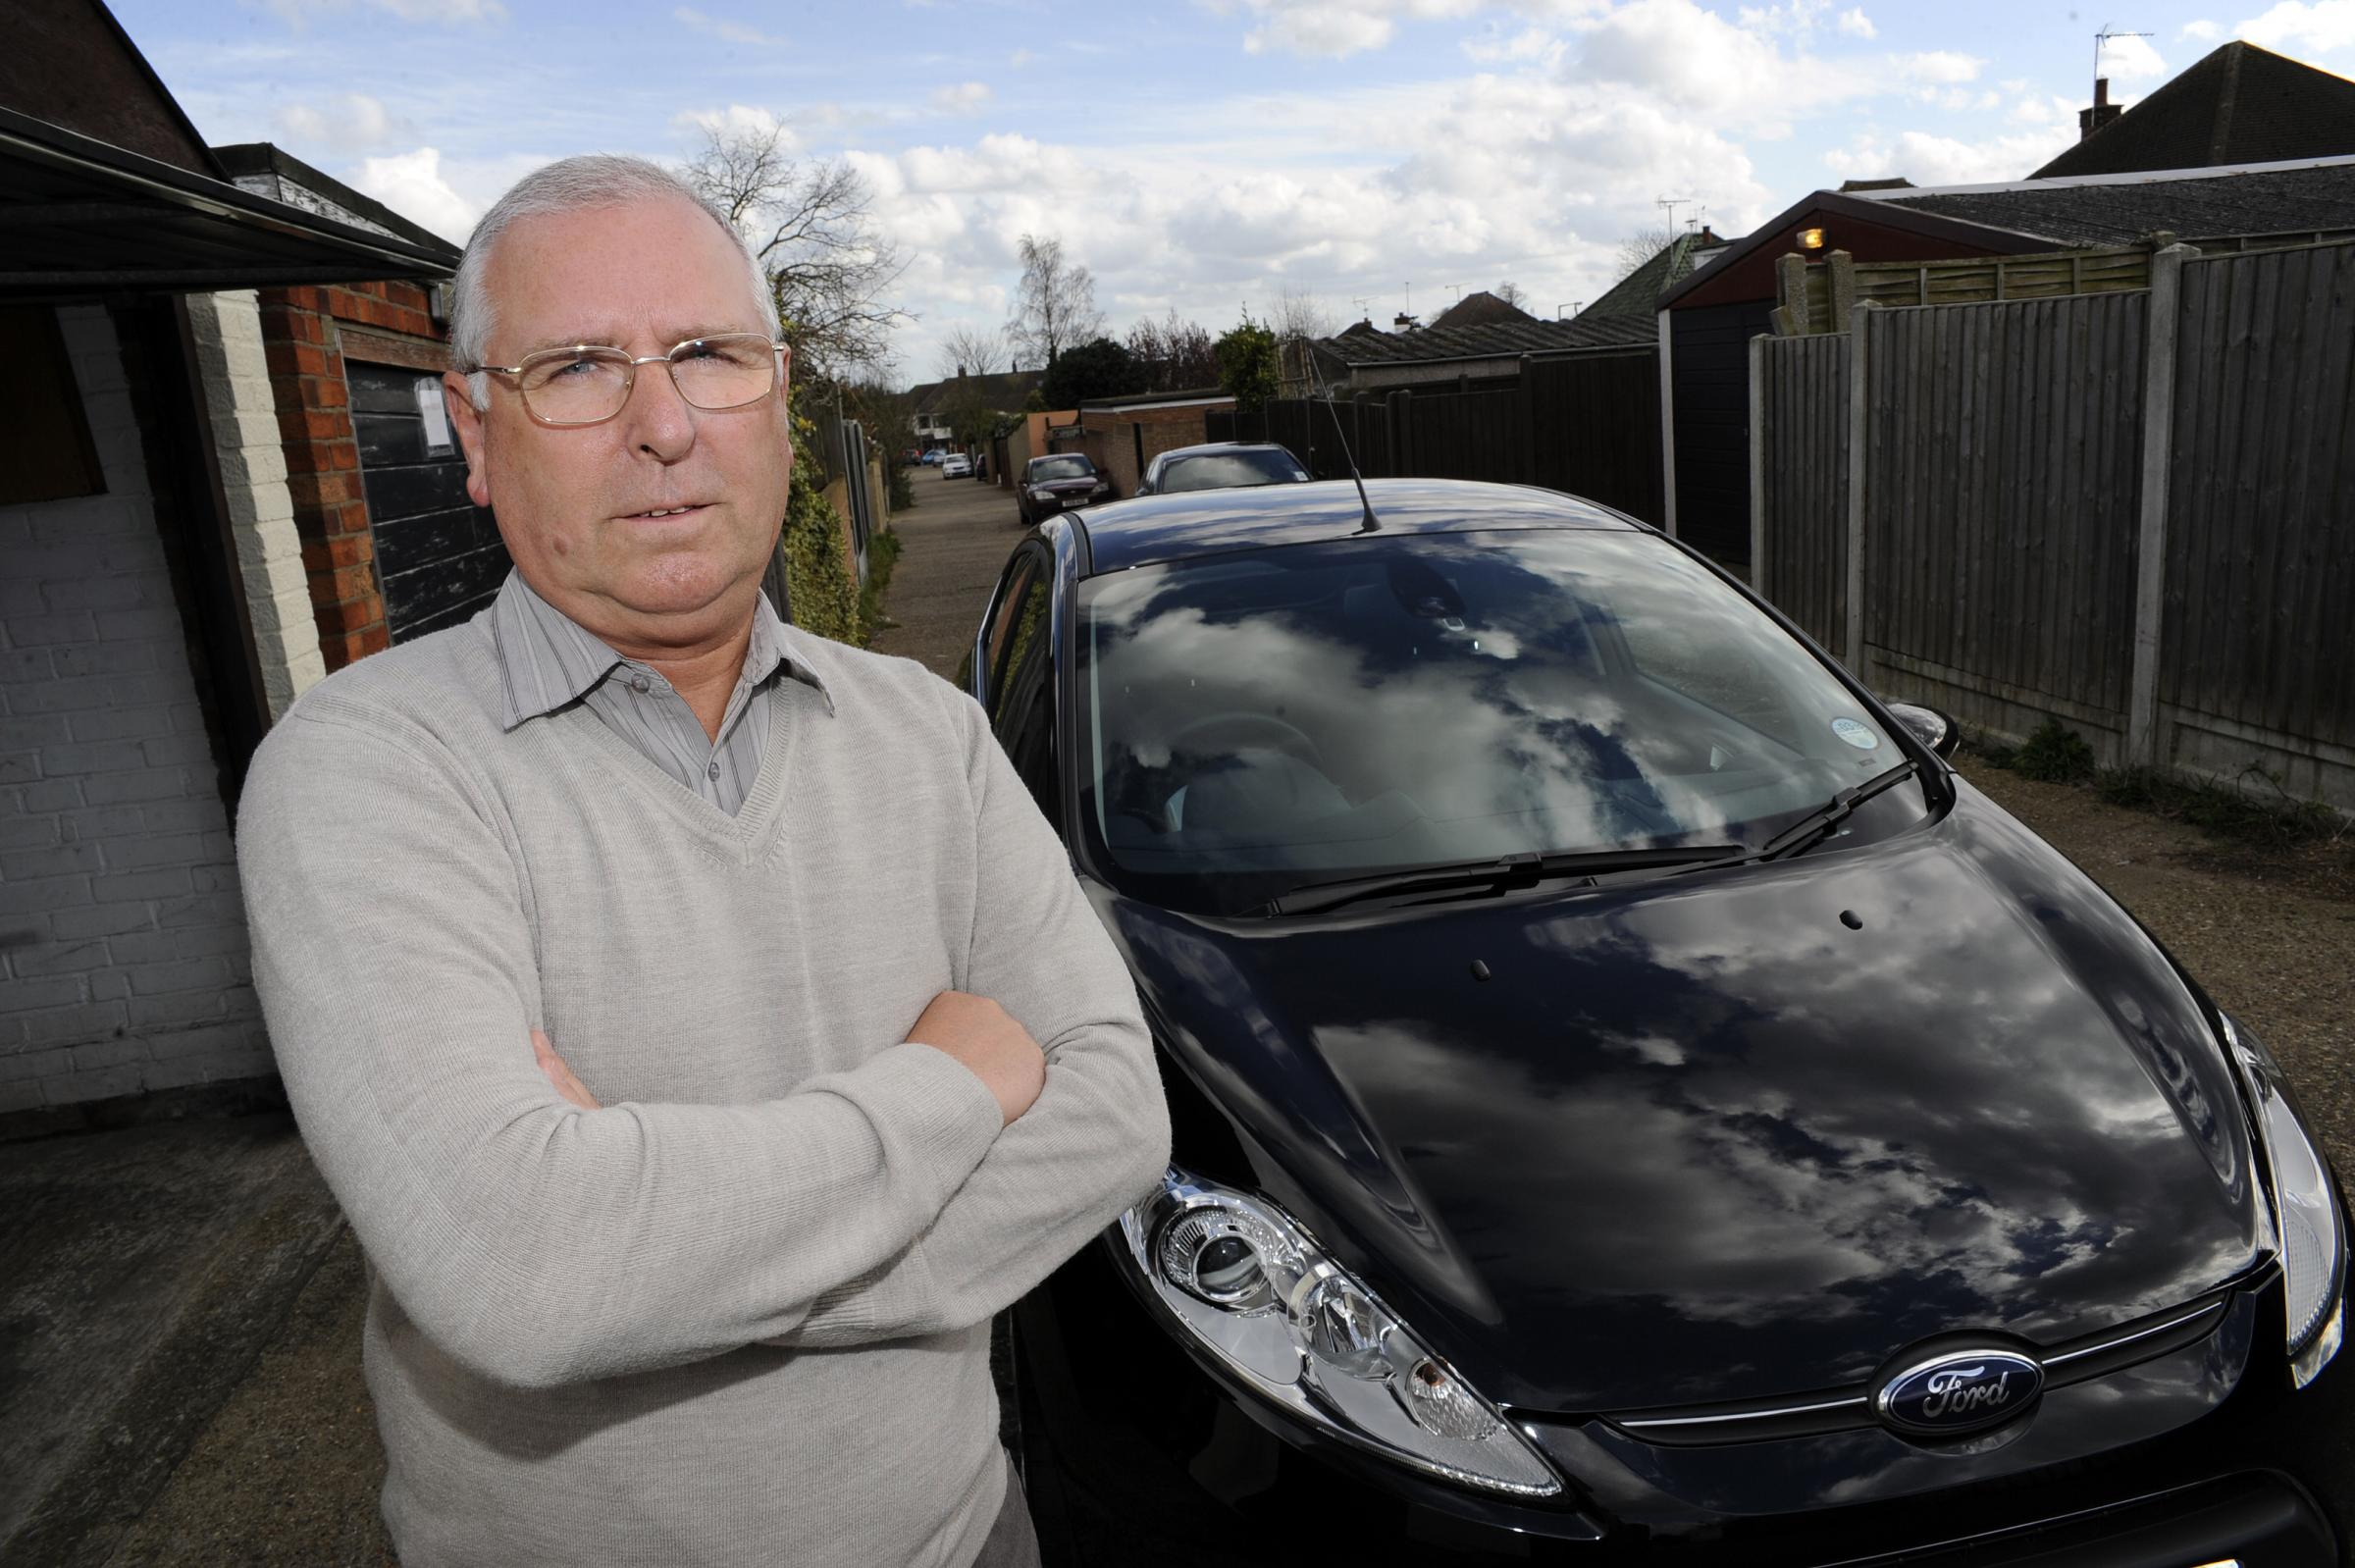 Terrified – Barry with repaired car